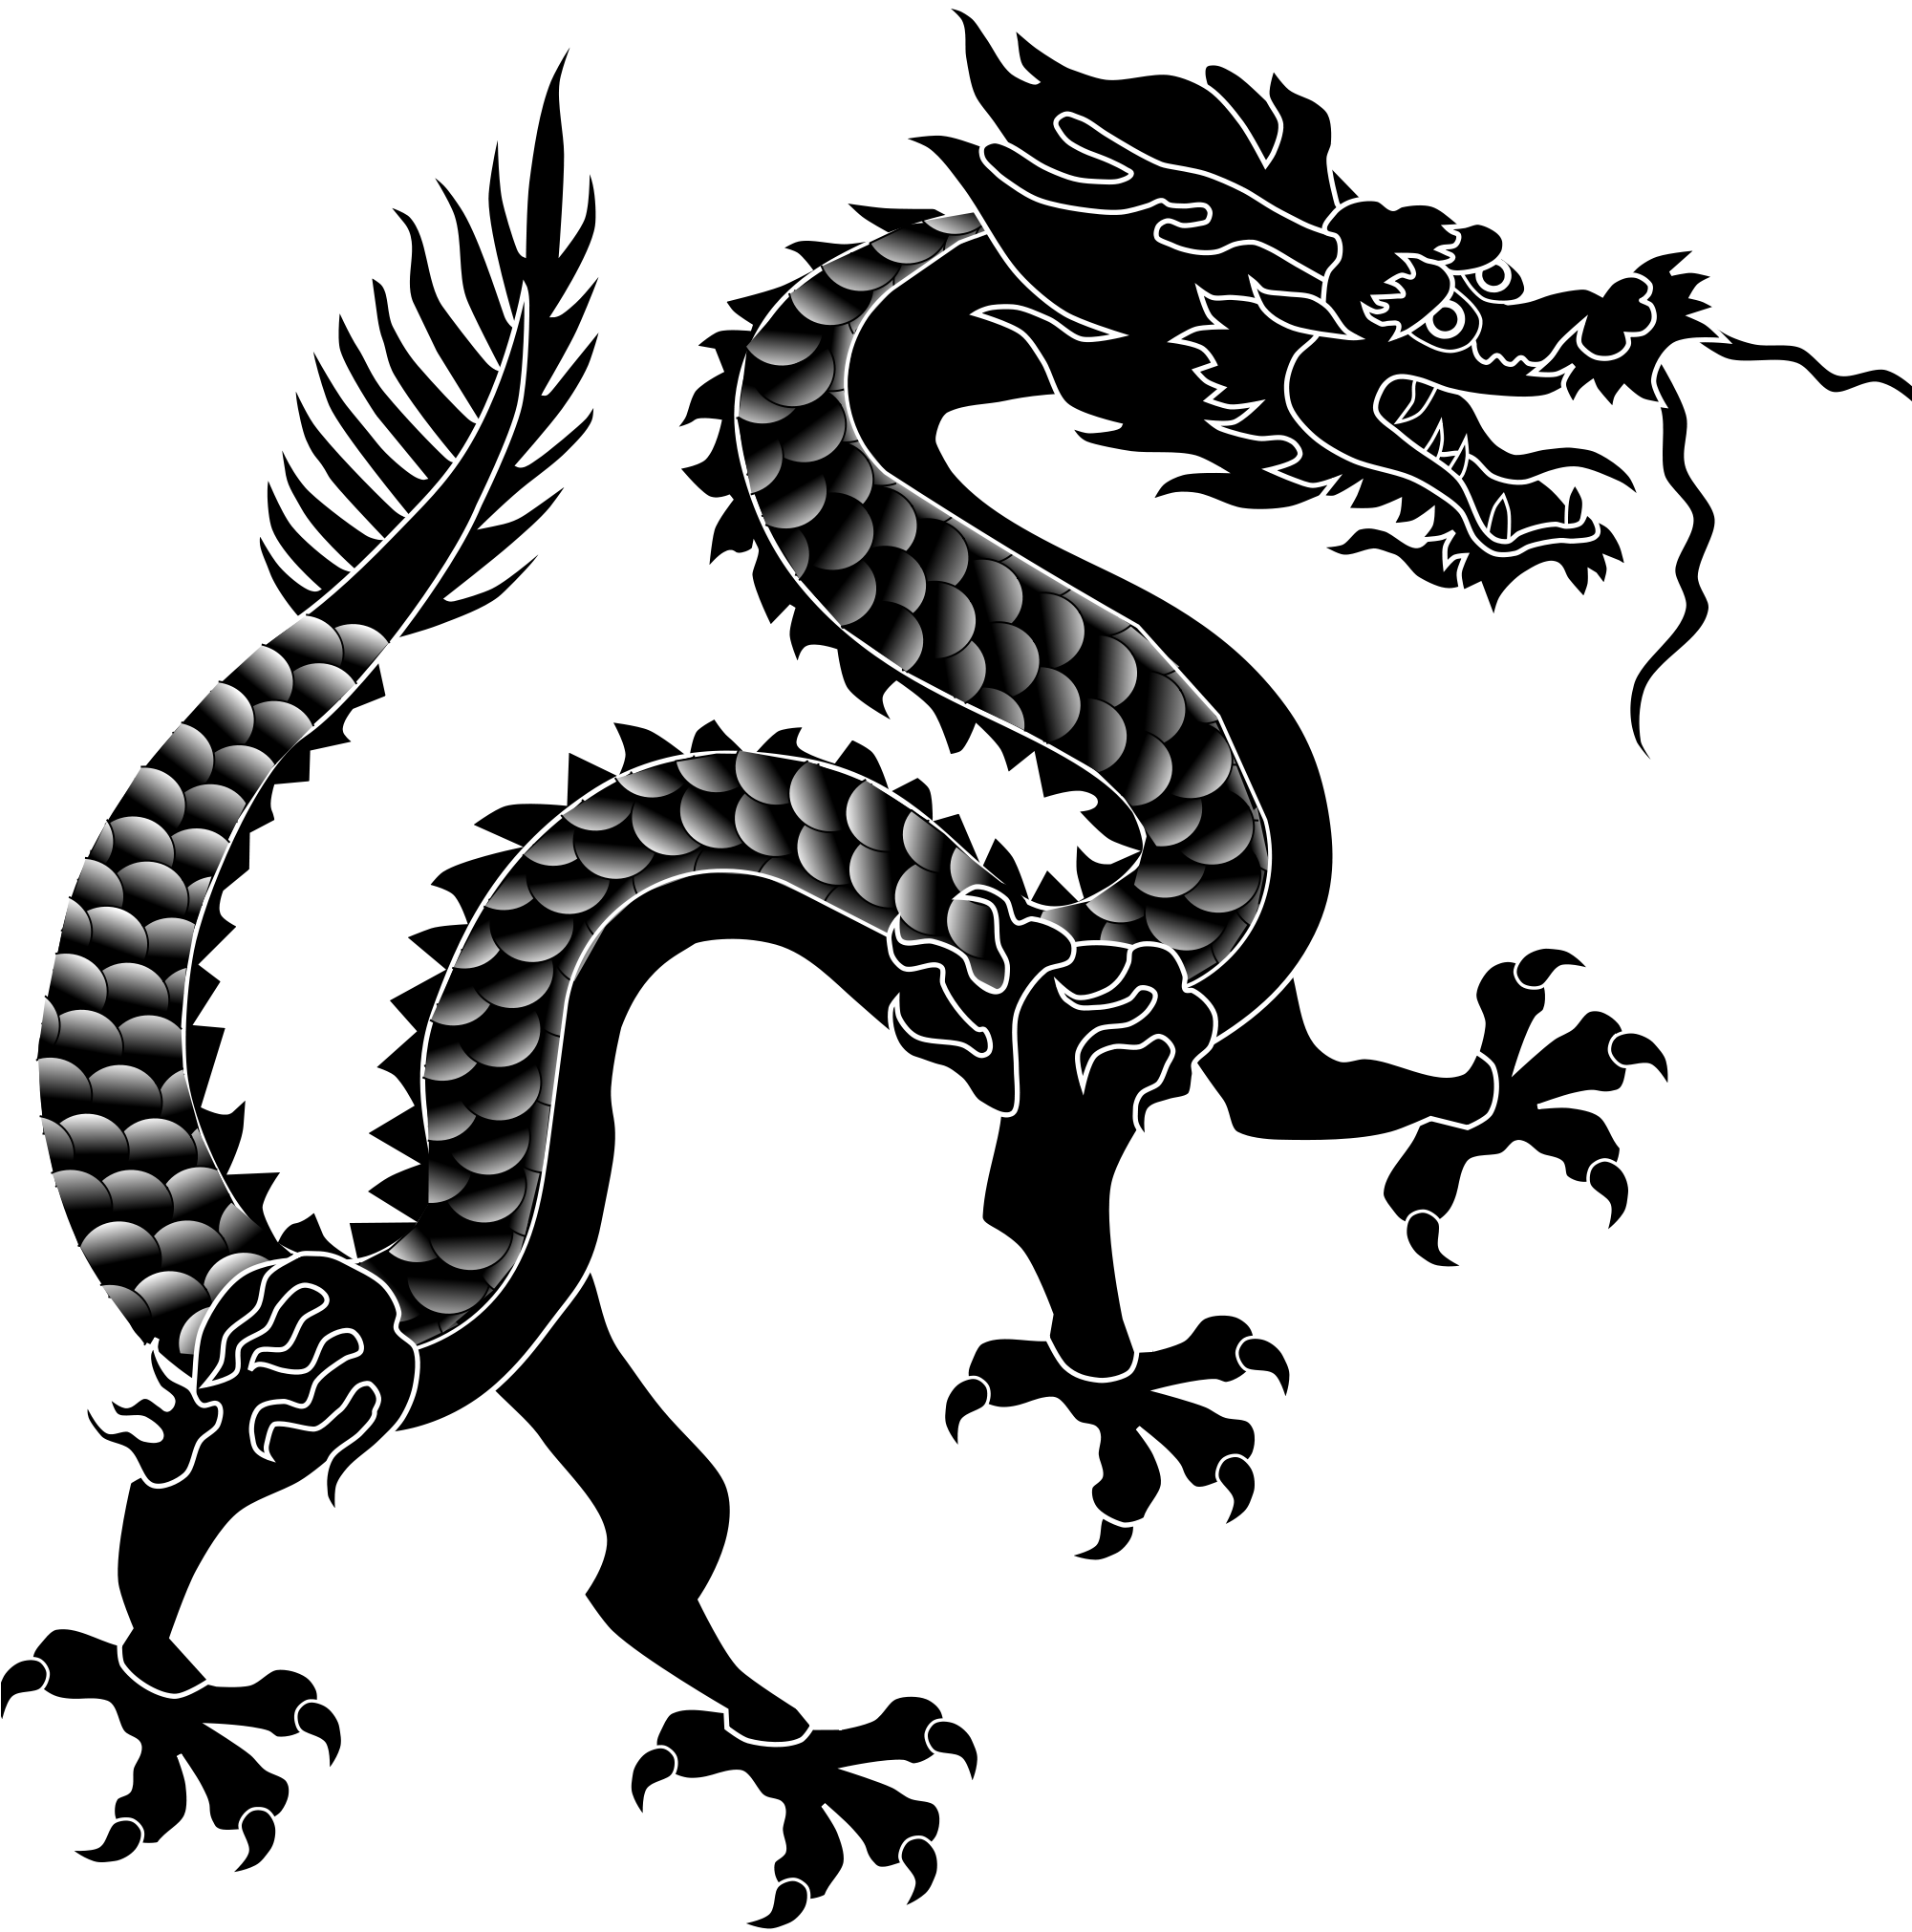 Download 2000 X 2040 21 0 - Chinese Dragon Silhouette Png ...